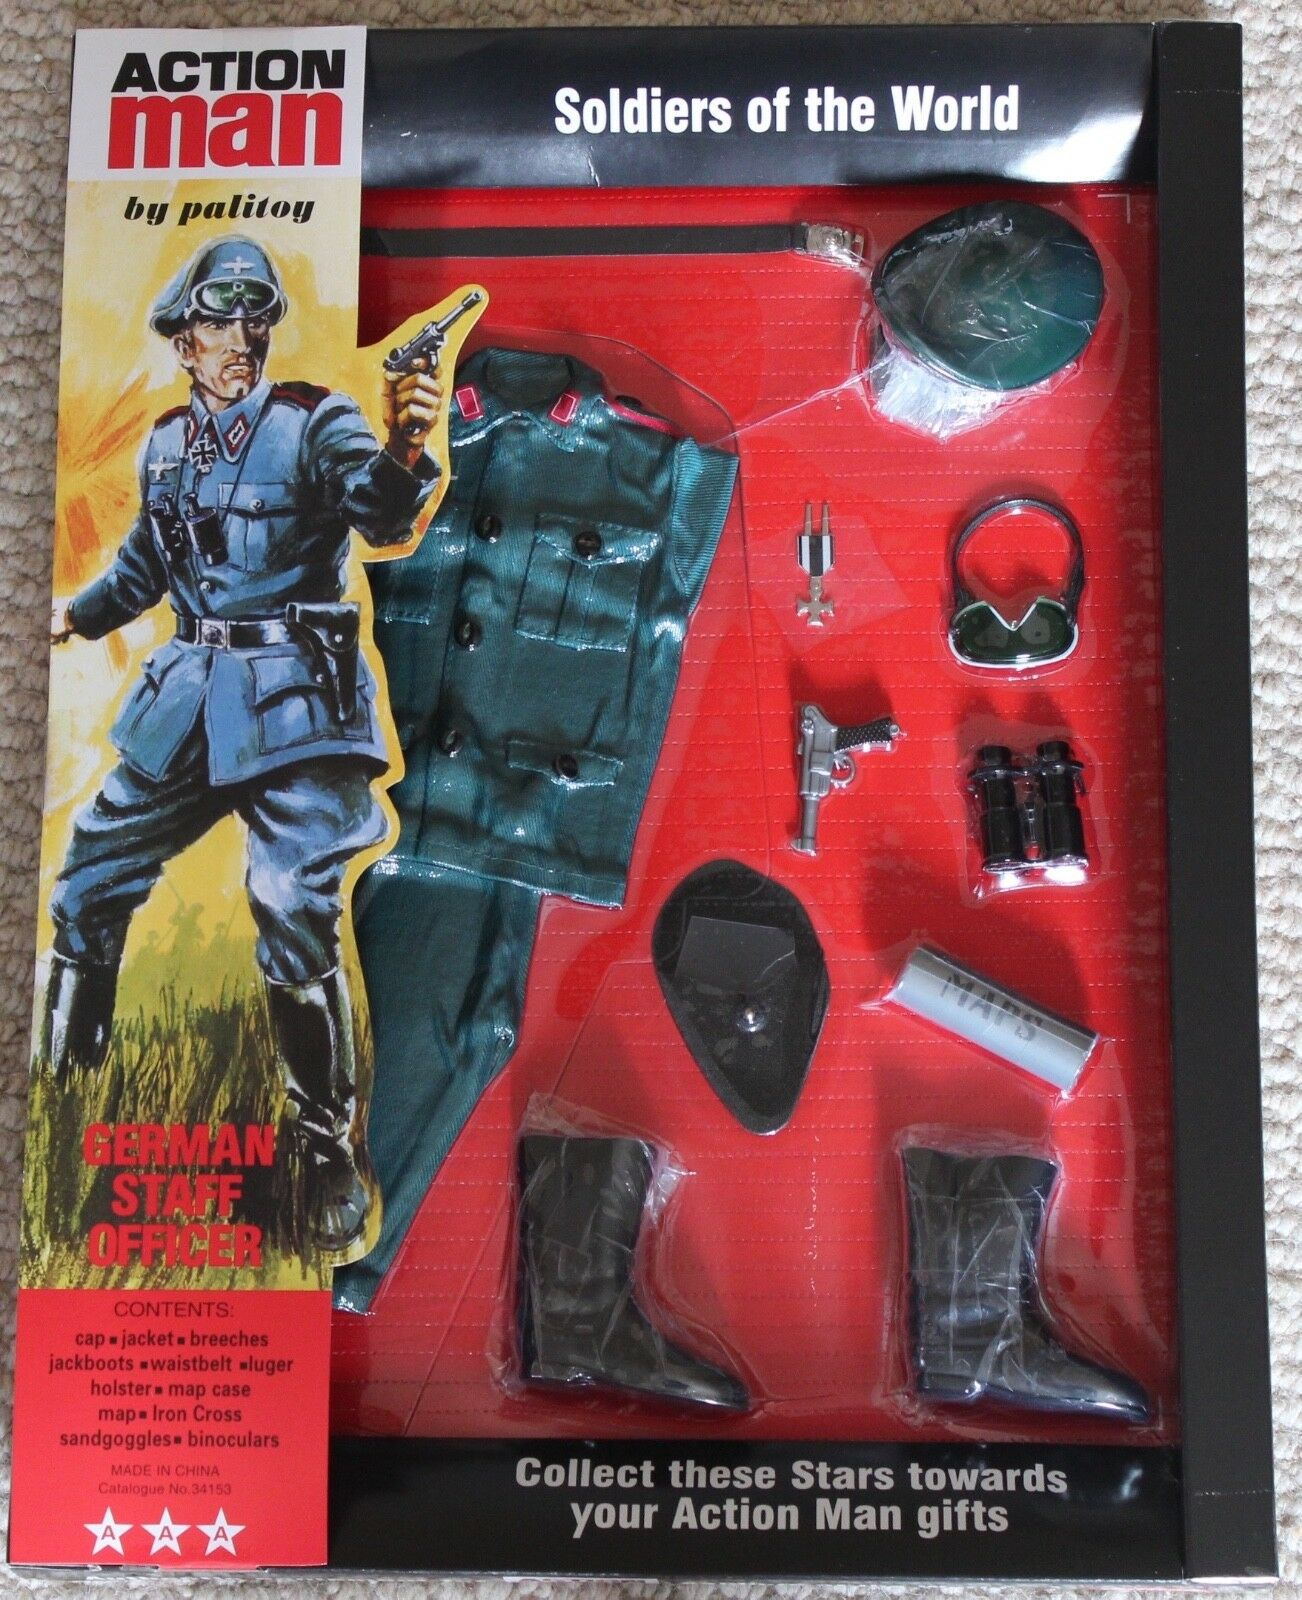 Vintage action man 40th anniversary german staff officer card boxed